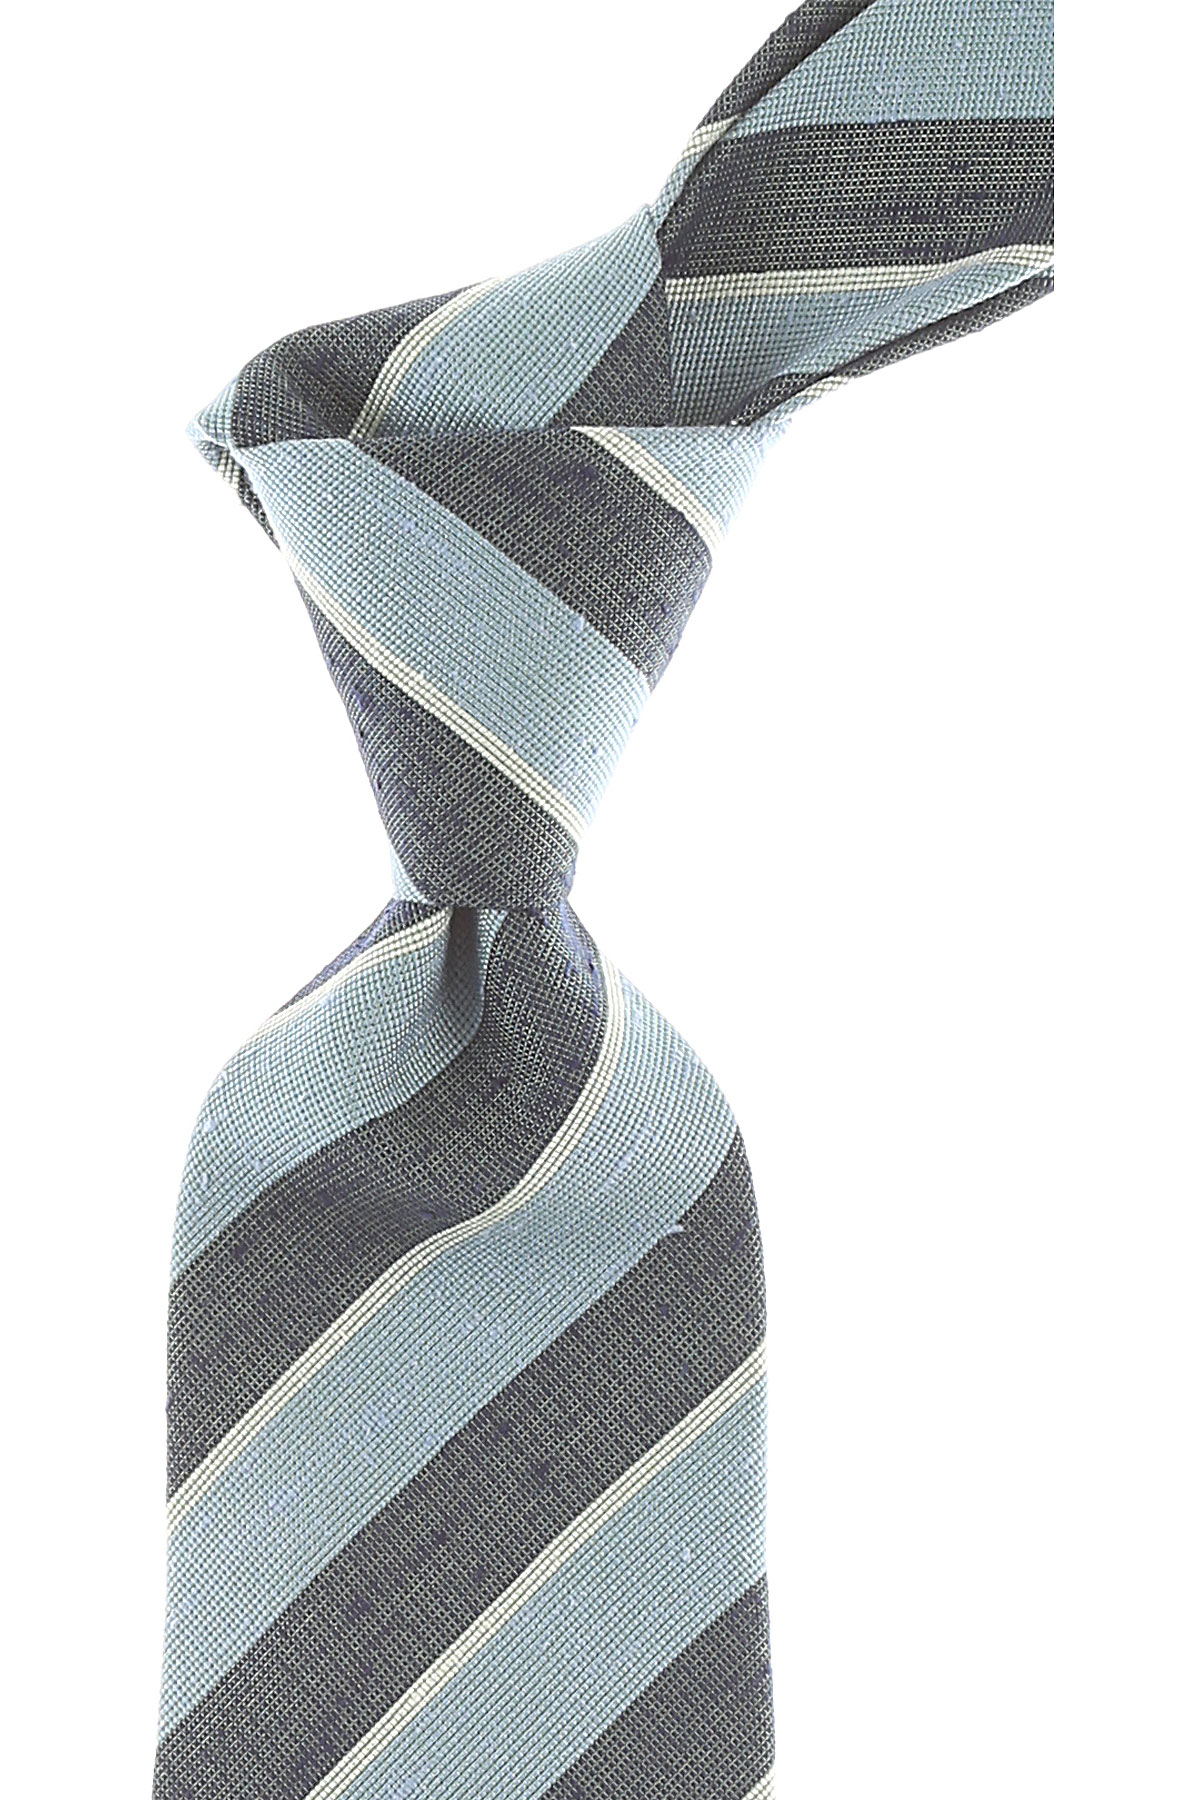 Giorgio_Armani_Ties_On_Sale_Light_Sky_Blue_Melange_Silk_2019